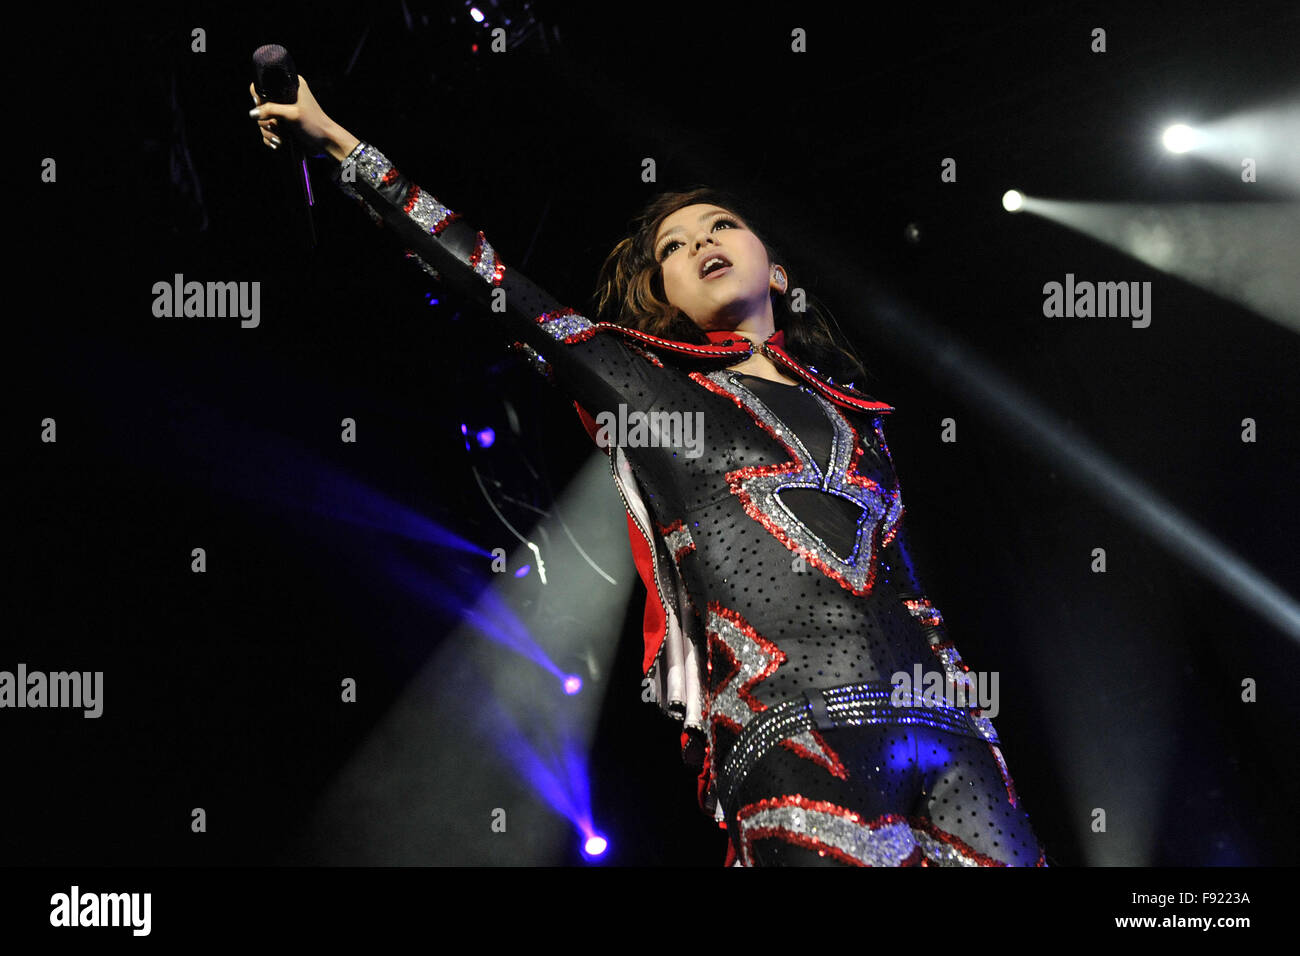 G E M Singer High Resolution Stock Photography And Images Alamy